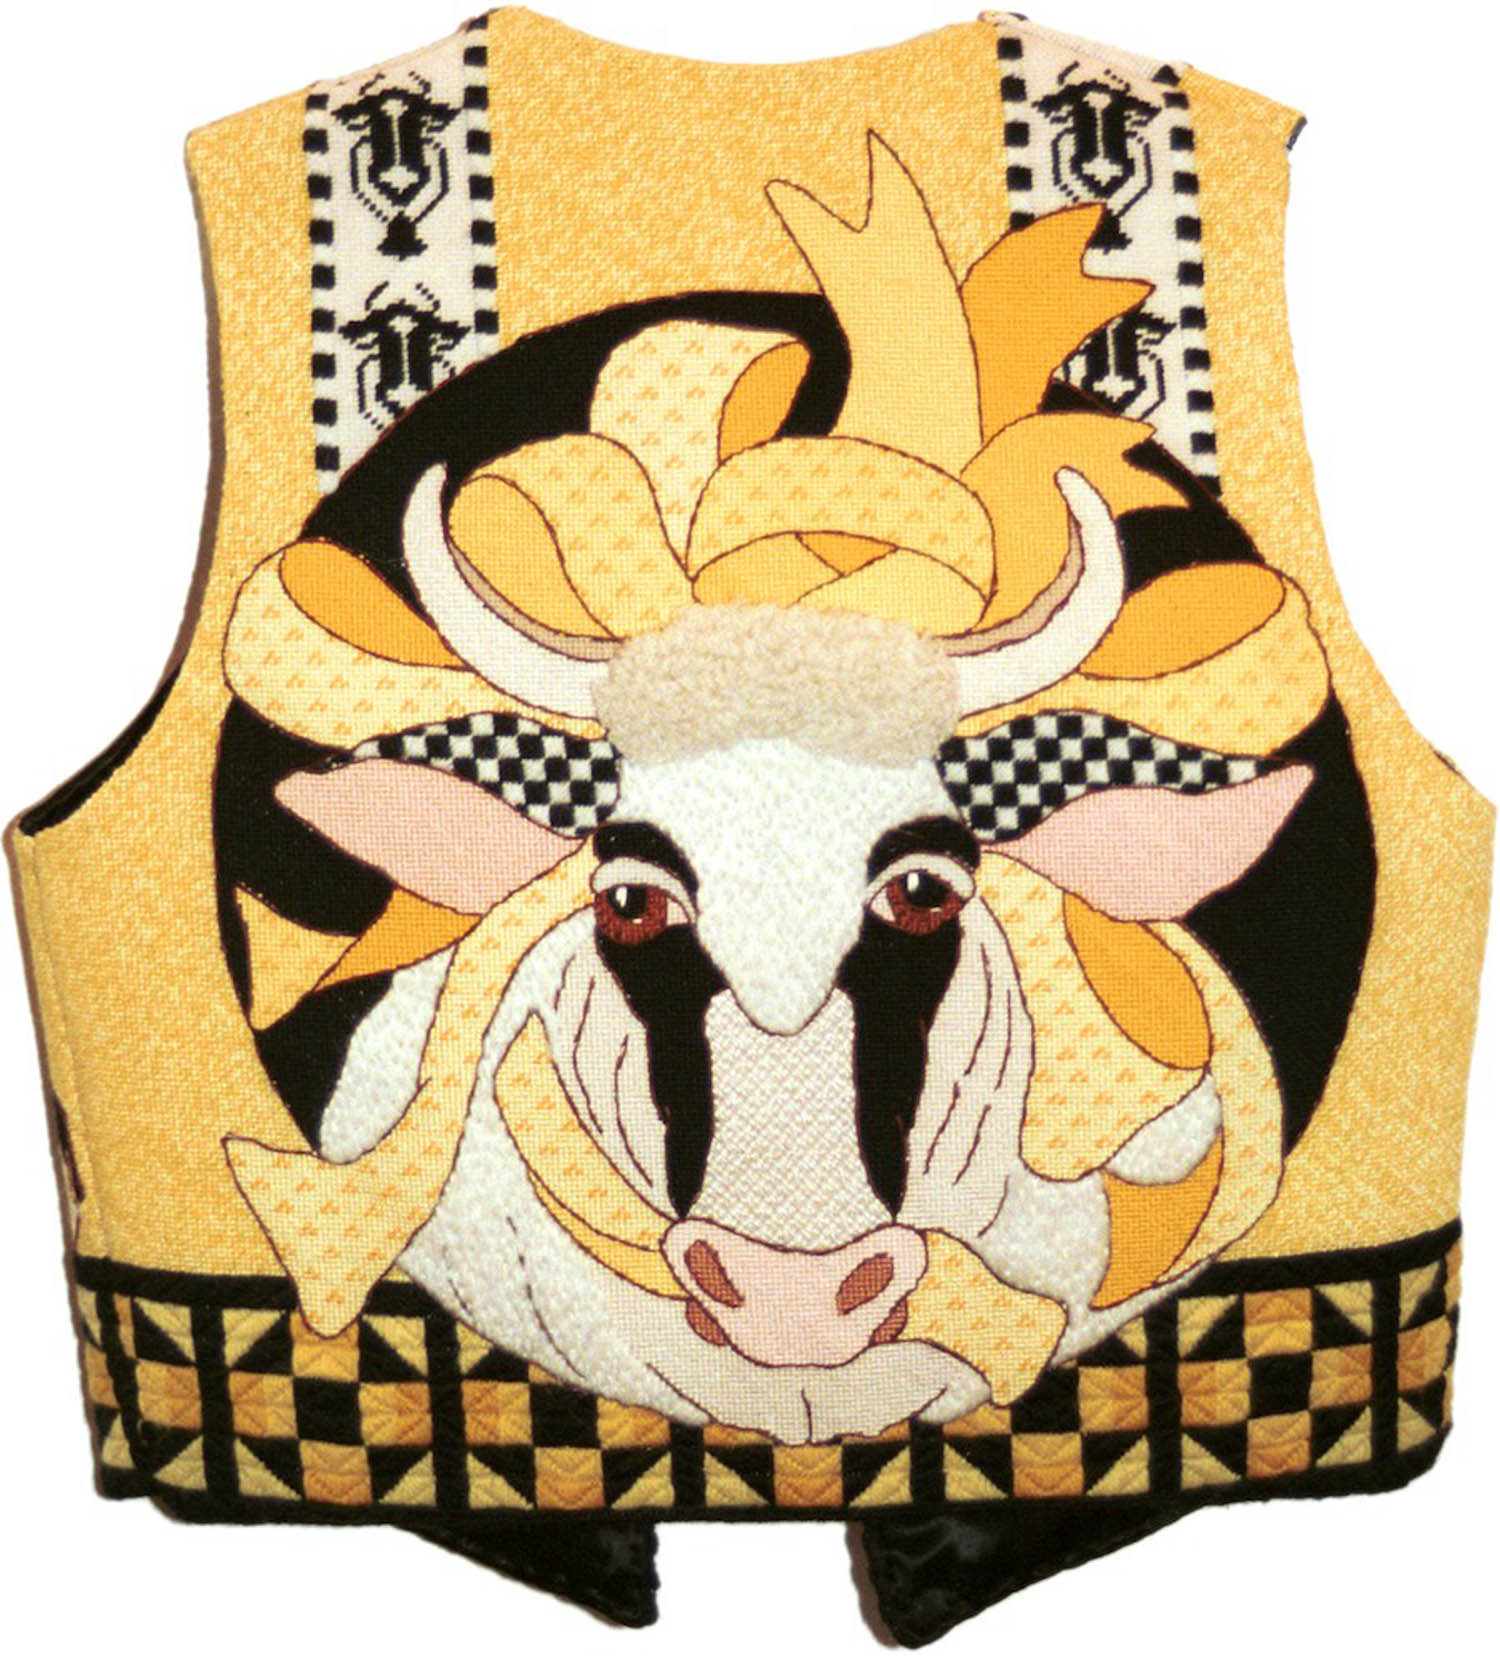 Cow Vest (Back side)